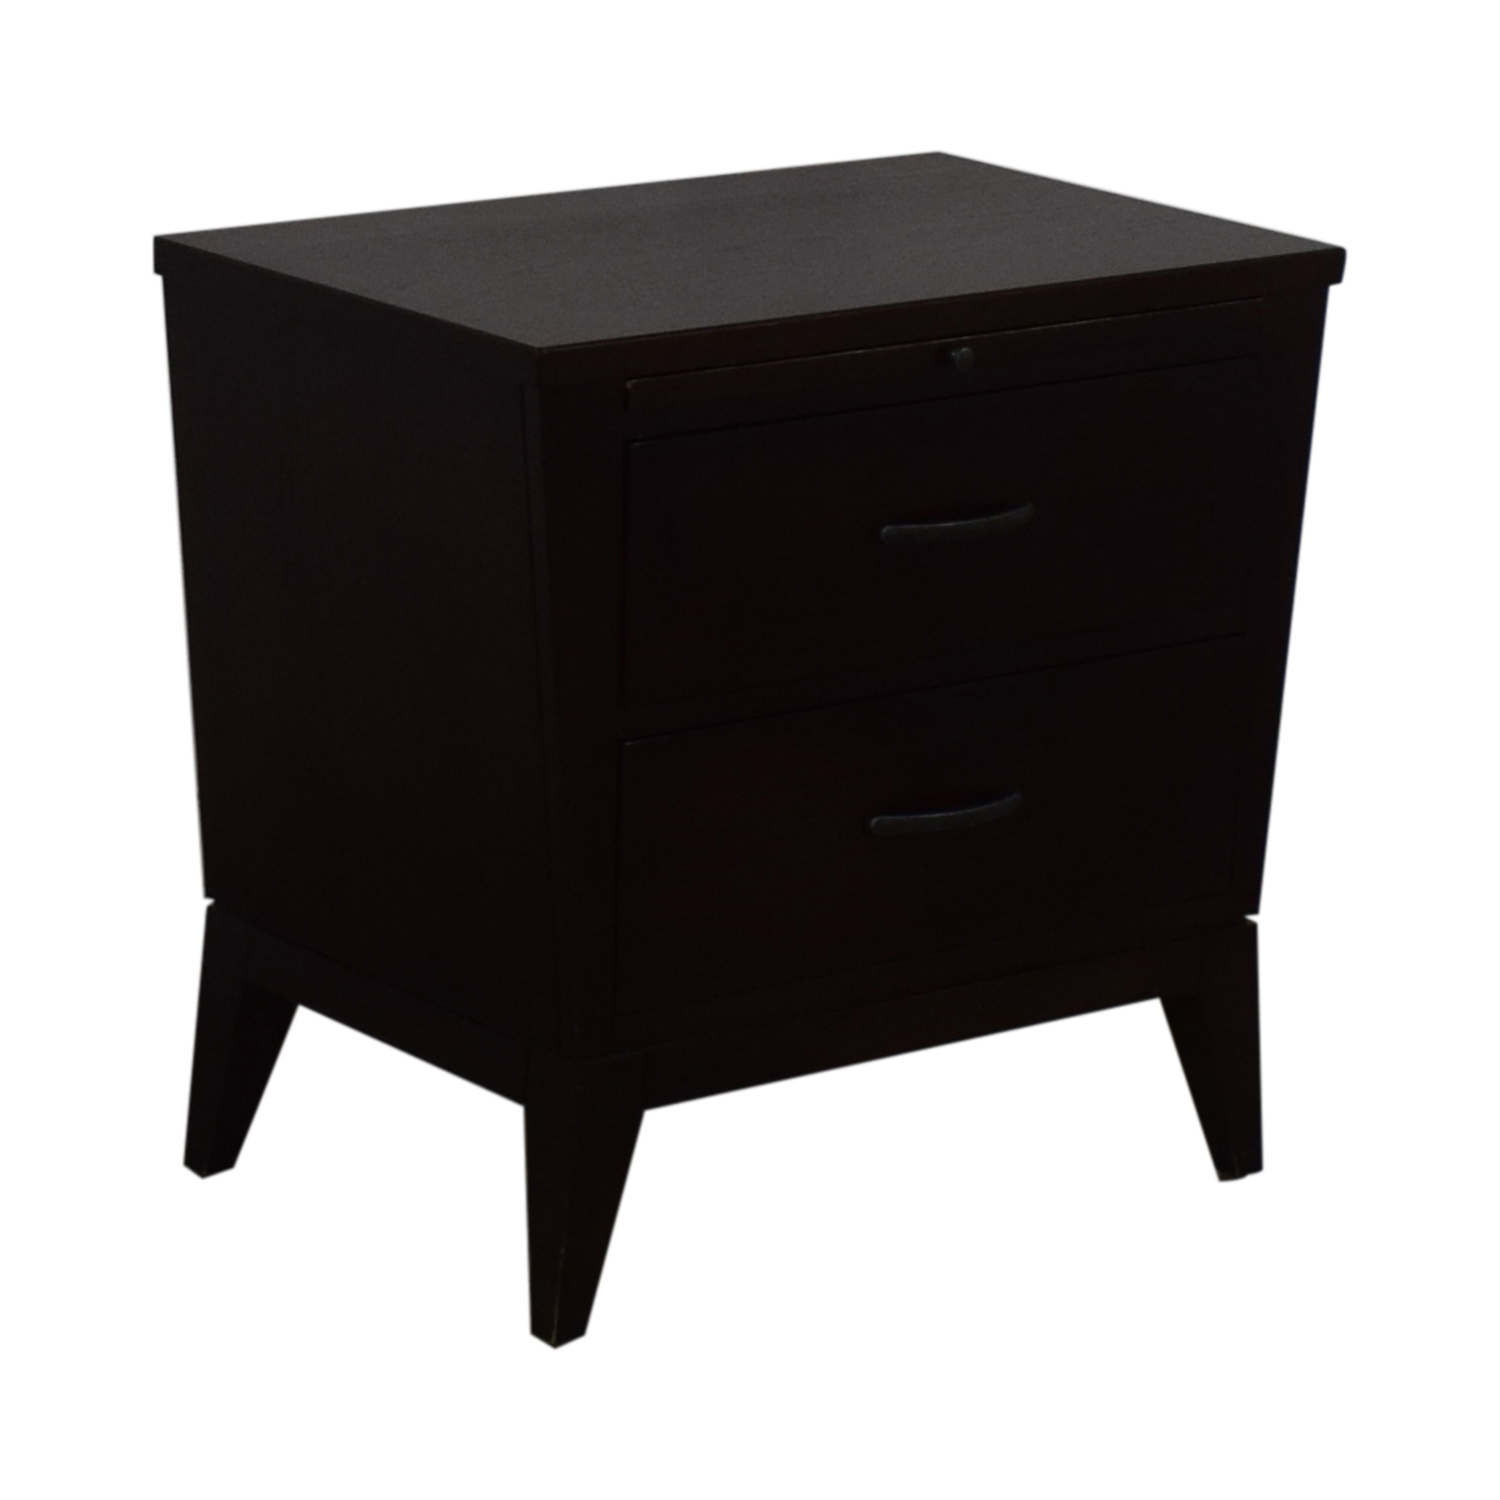 Ethan Allen Ethan Allen Nightstand with Drawers coupon